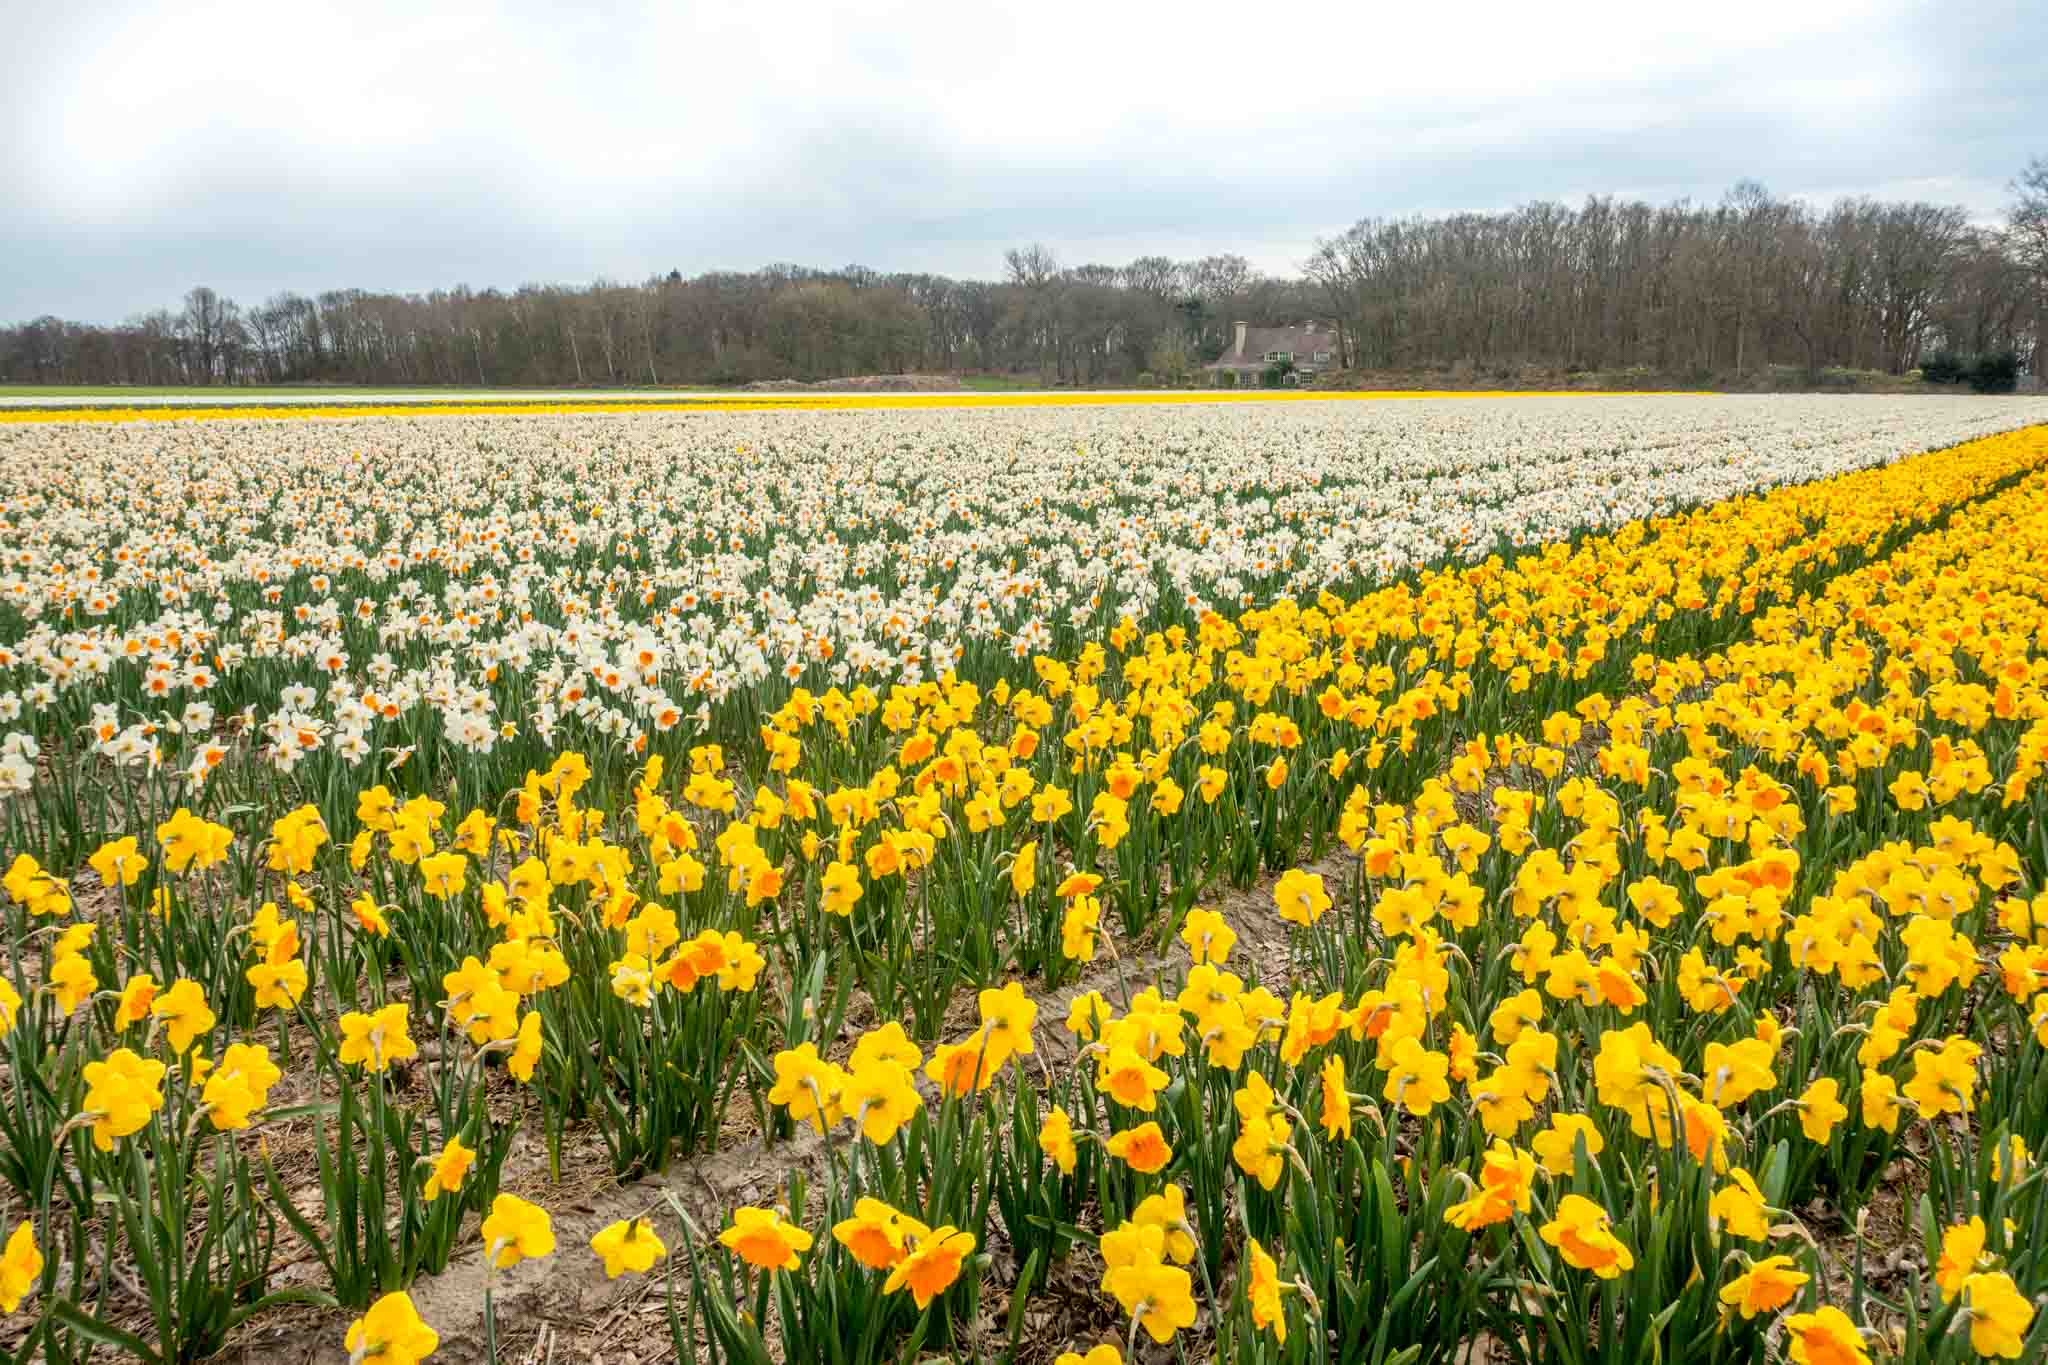 Rows of yellow and white daffodils in a field